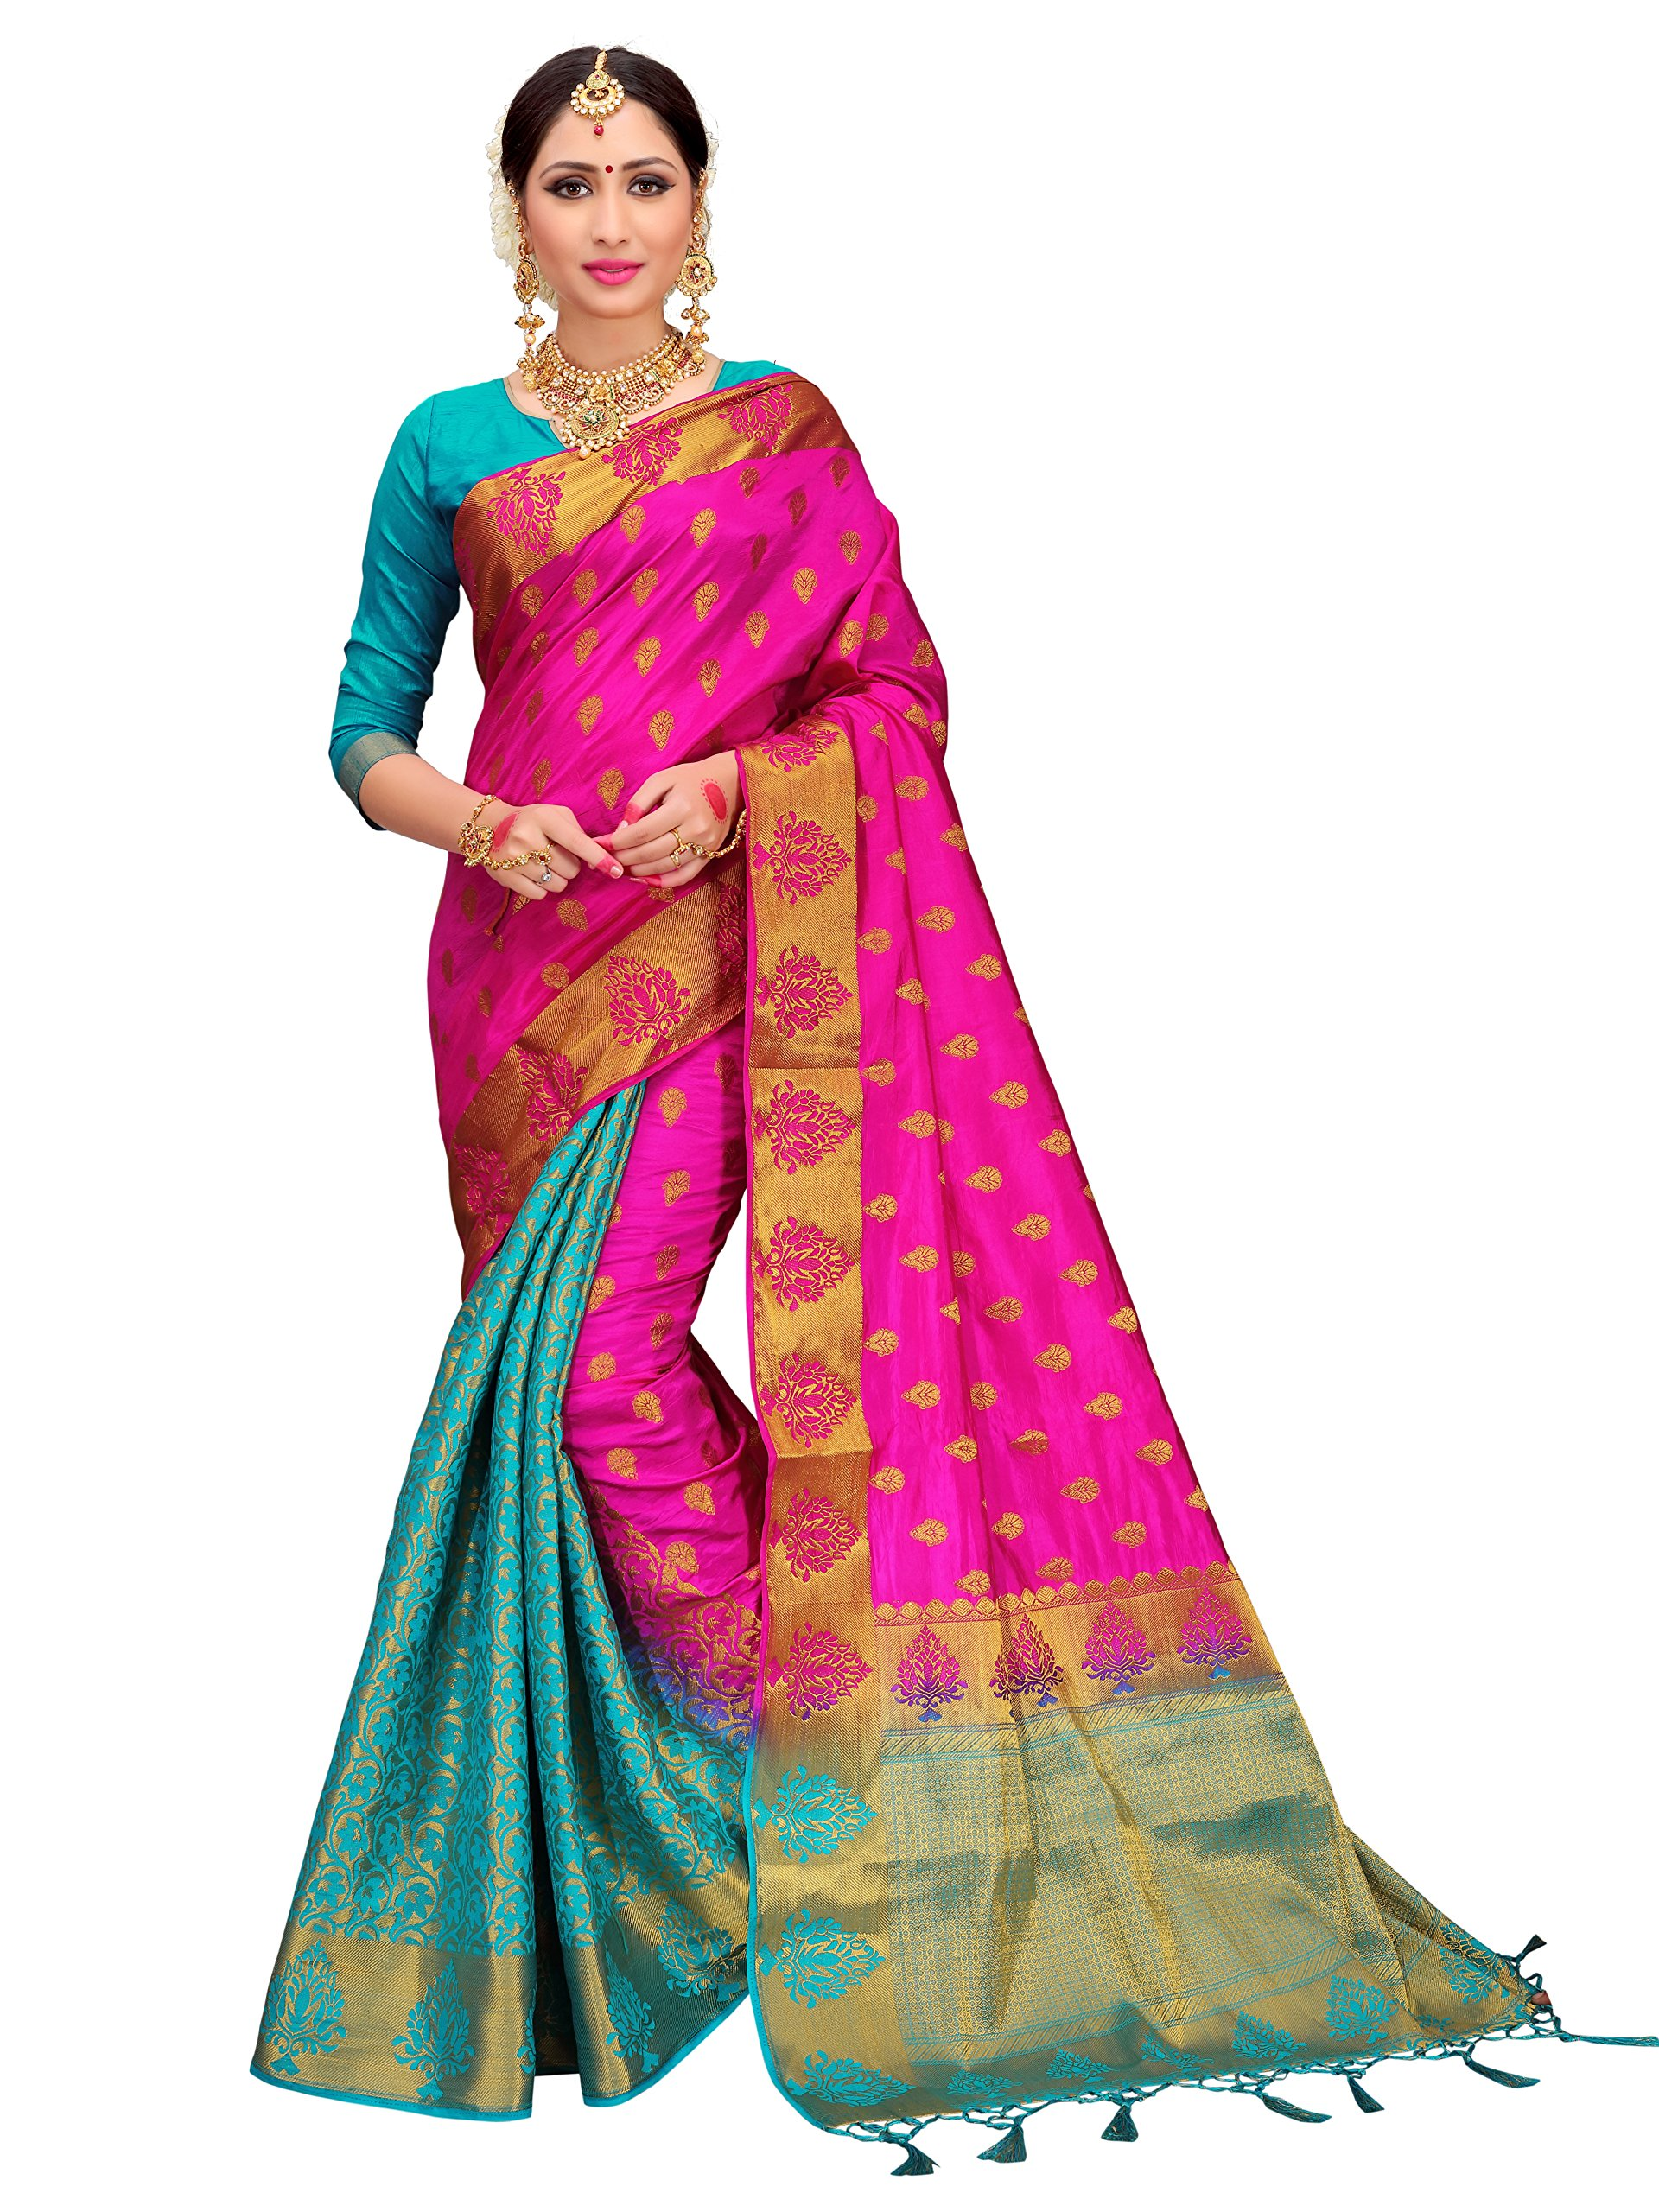 ELINA FASHION Sarees Women's Banarasi Art Silk Woven Work Saree l Indian Wedding Ethnic Sari & Blouse Piece (Pink & Turquoise)